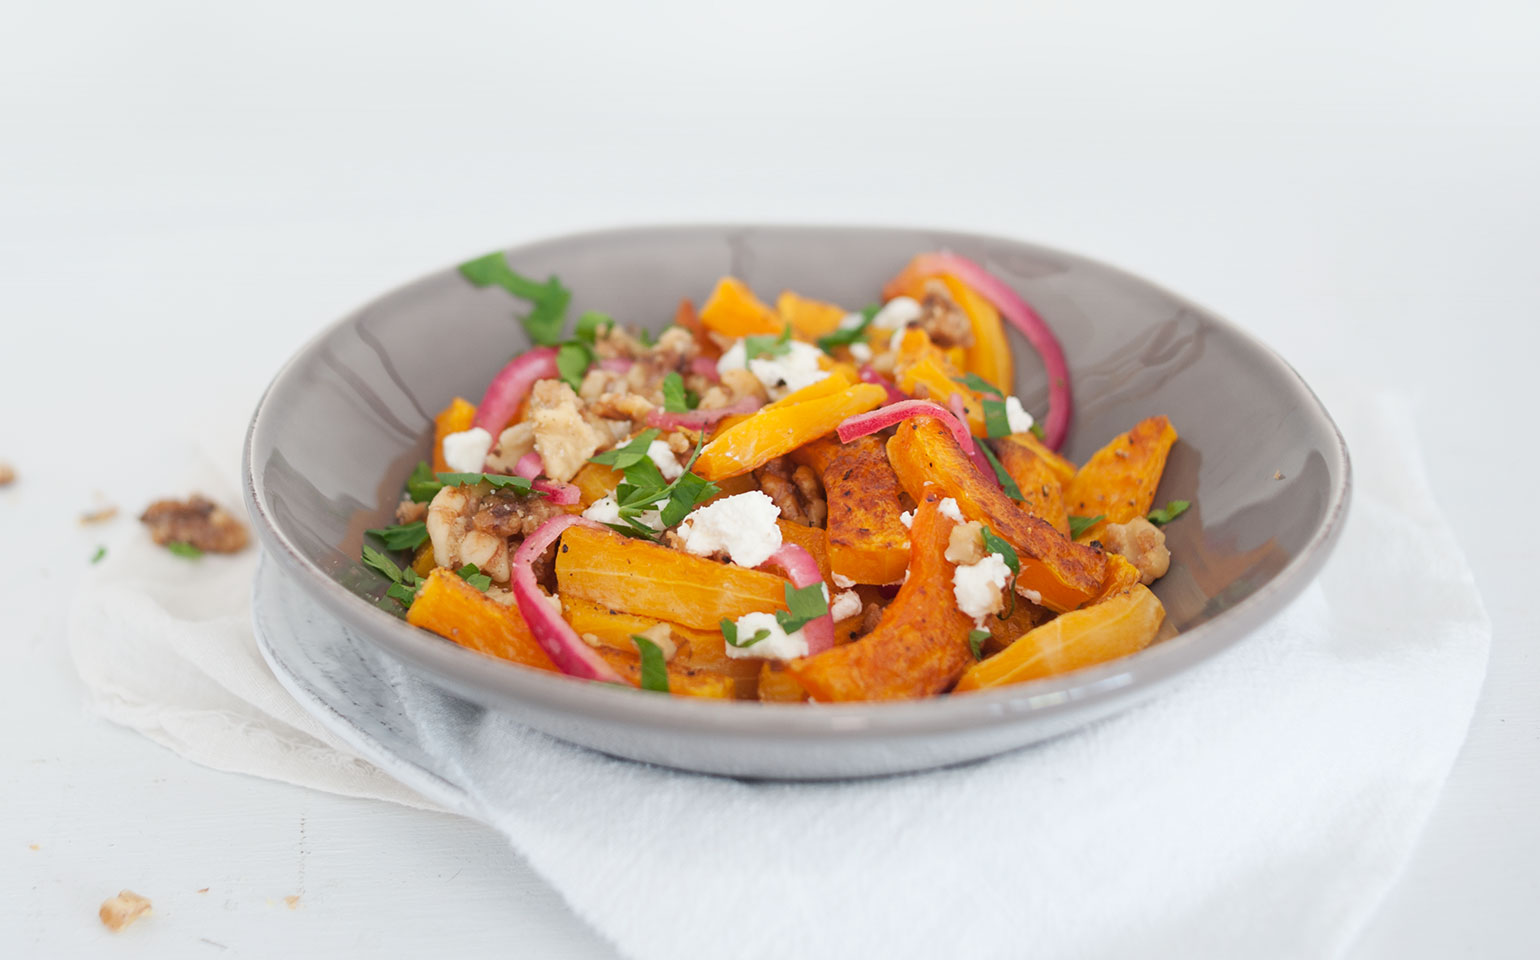 Butternut Squash, Pickled Red Onions, Candied Walnuts & Goat Cheese Salad